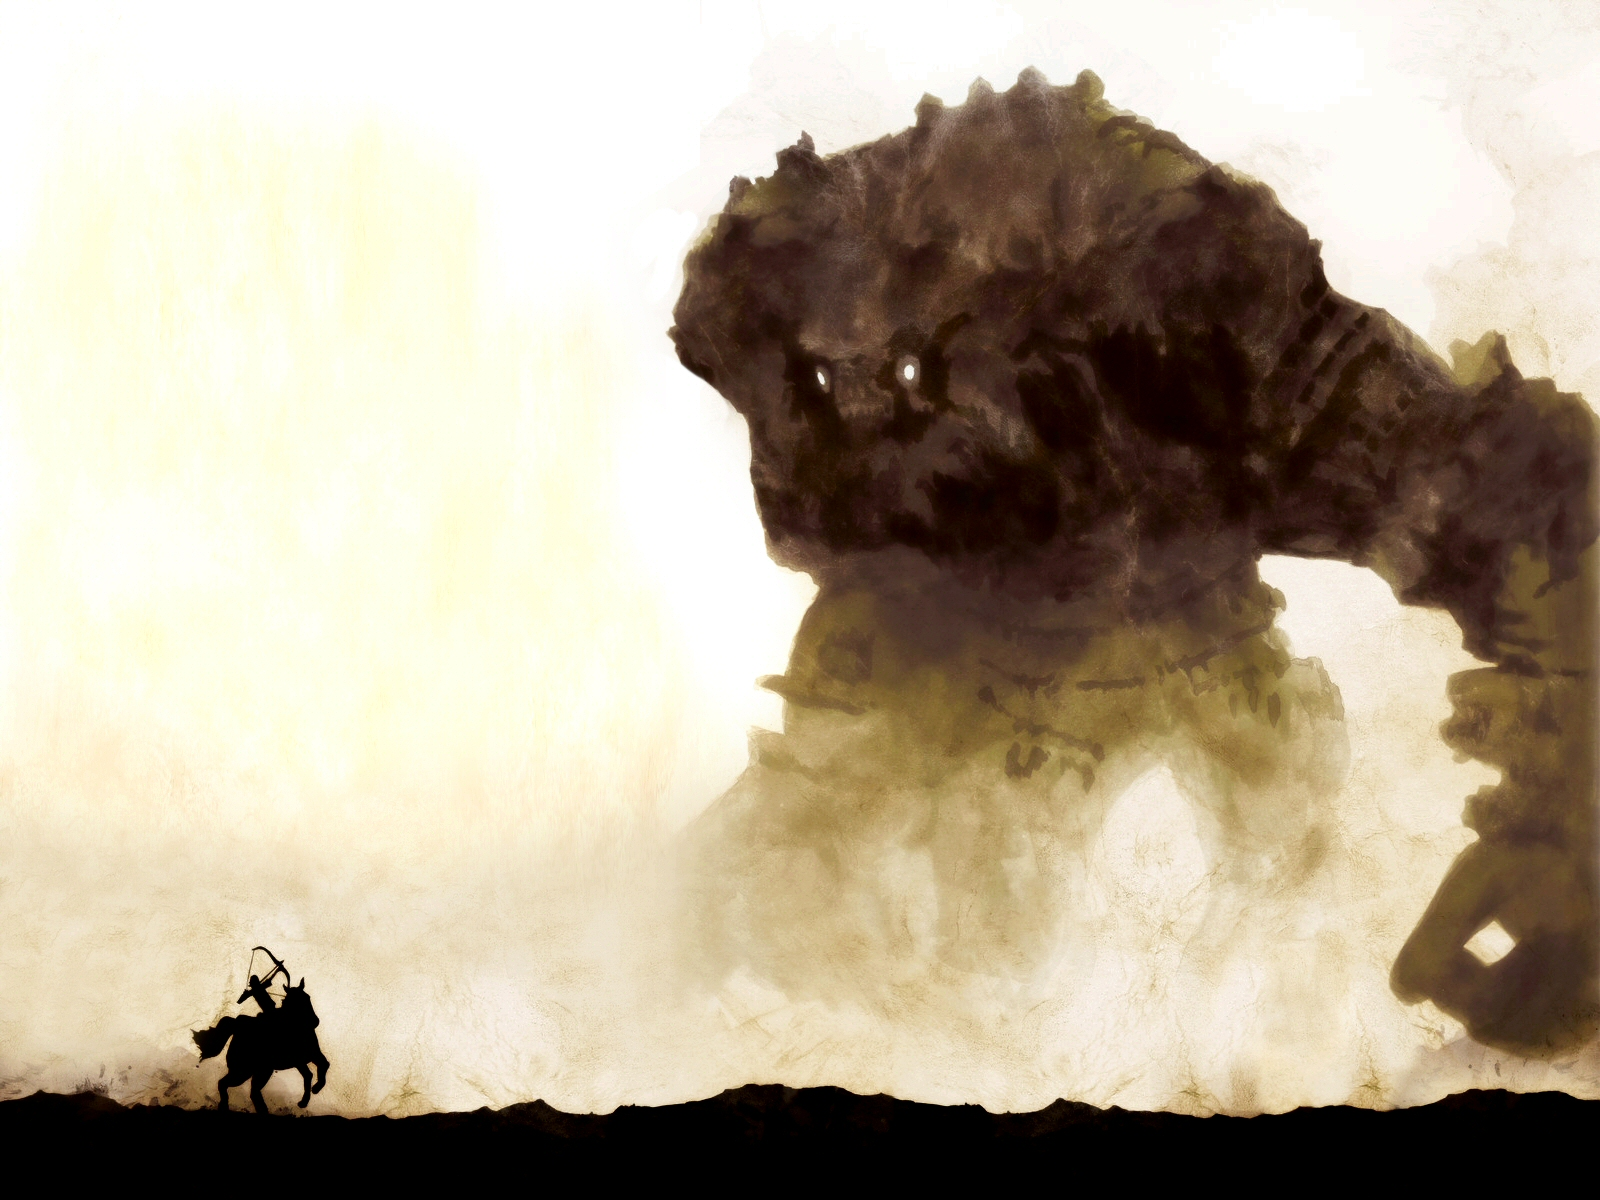 Das Action-Adventure Shadow of the Colossus erschien 2005. (Bild: Sony)